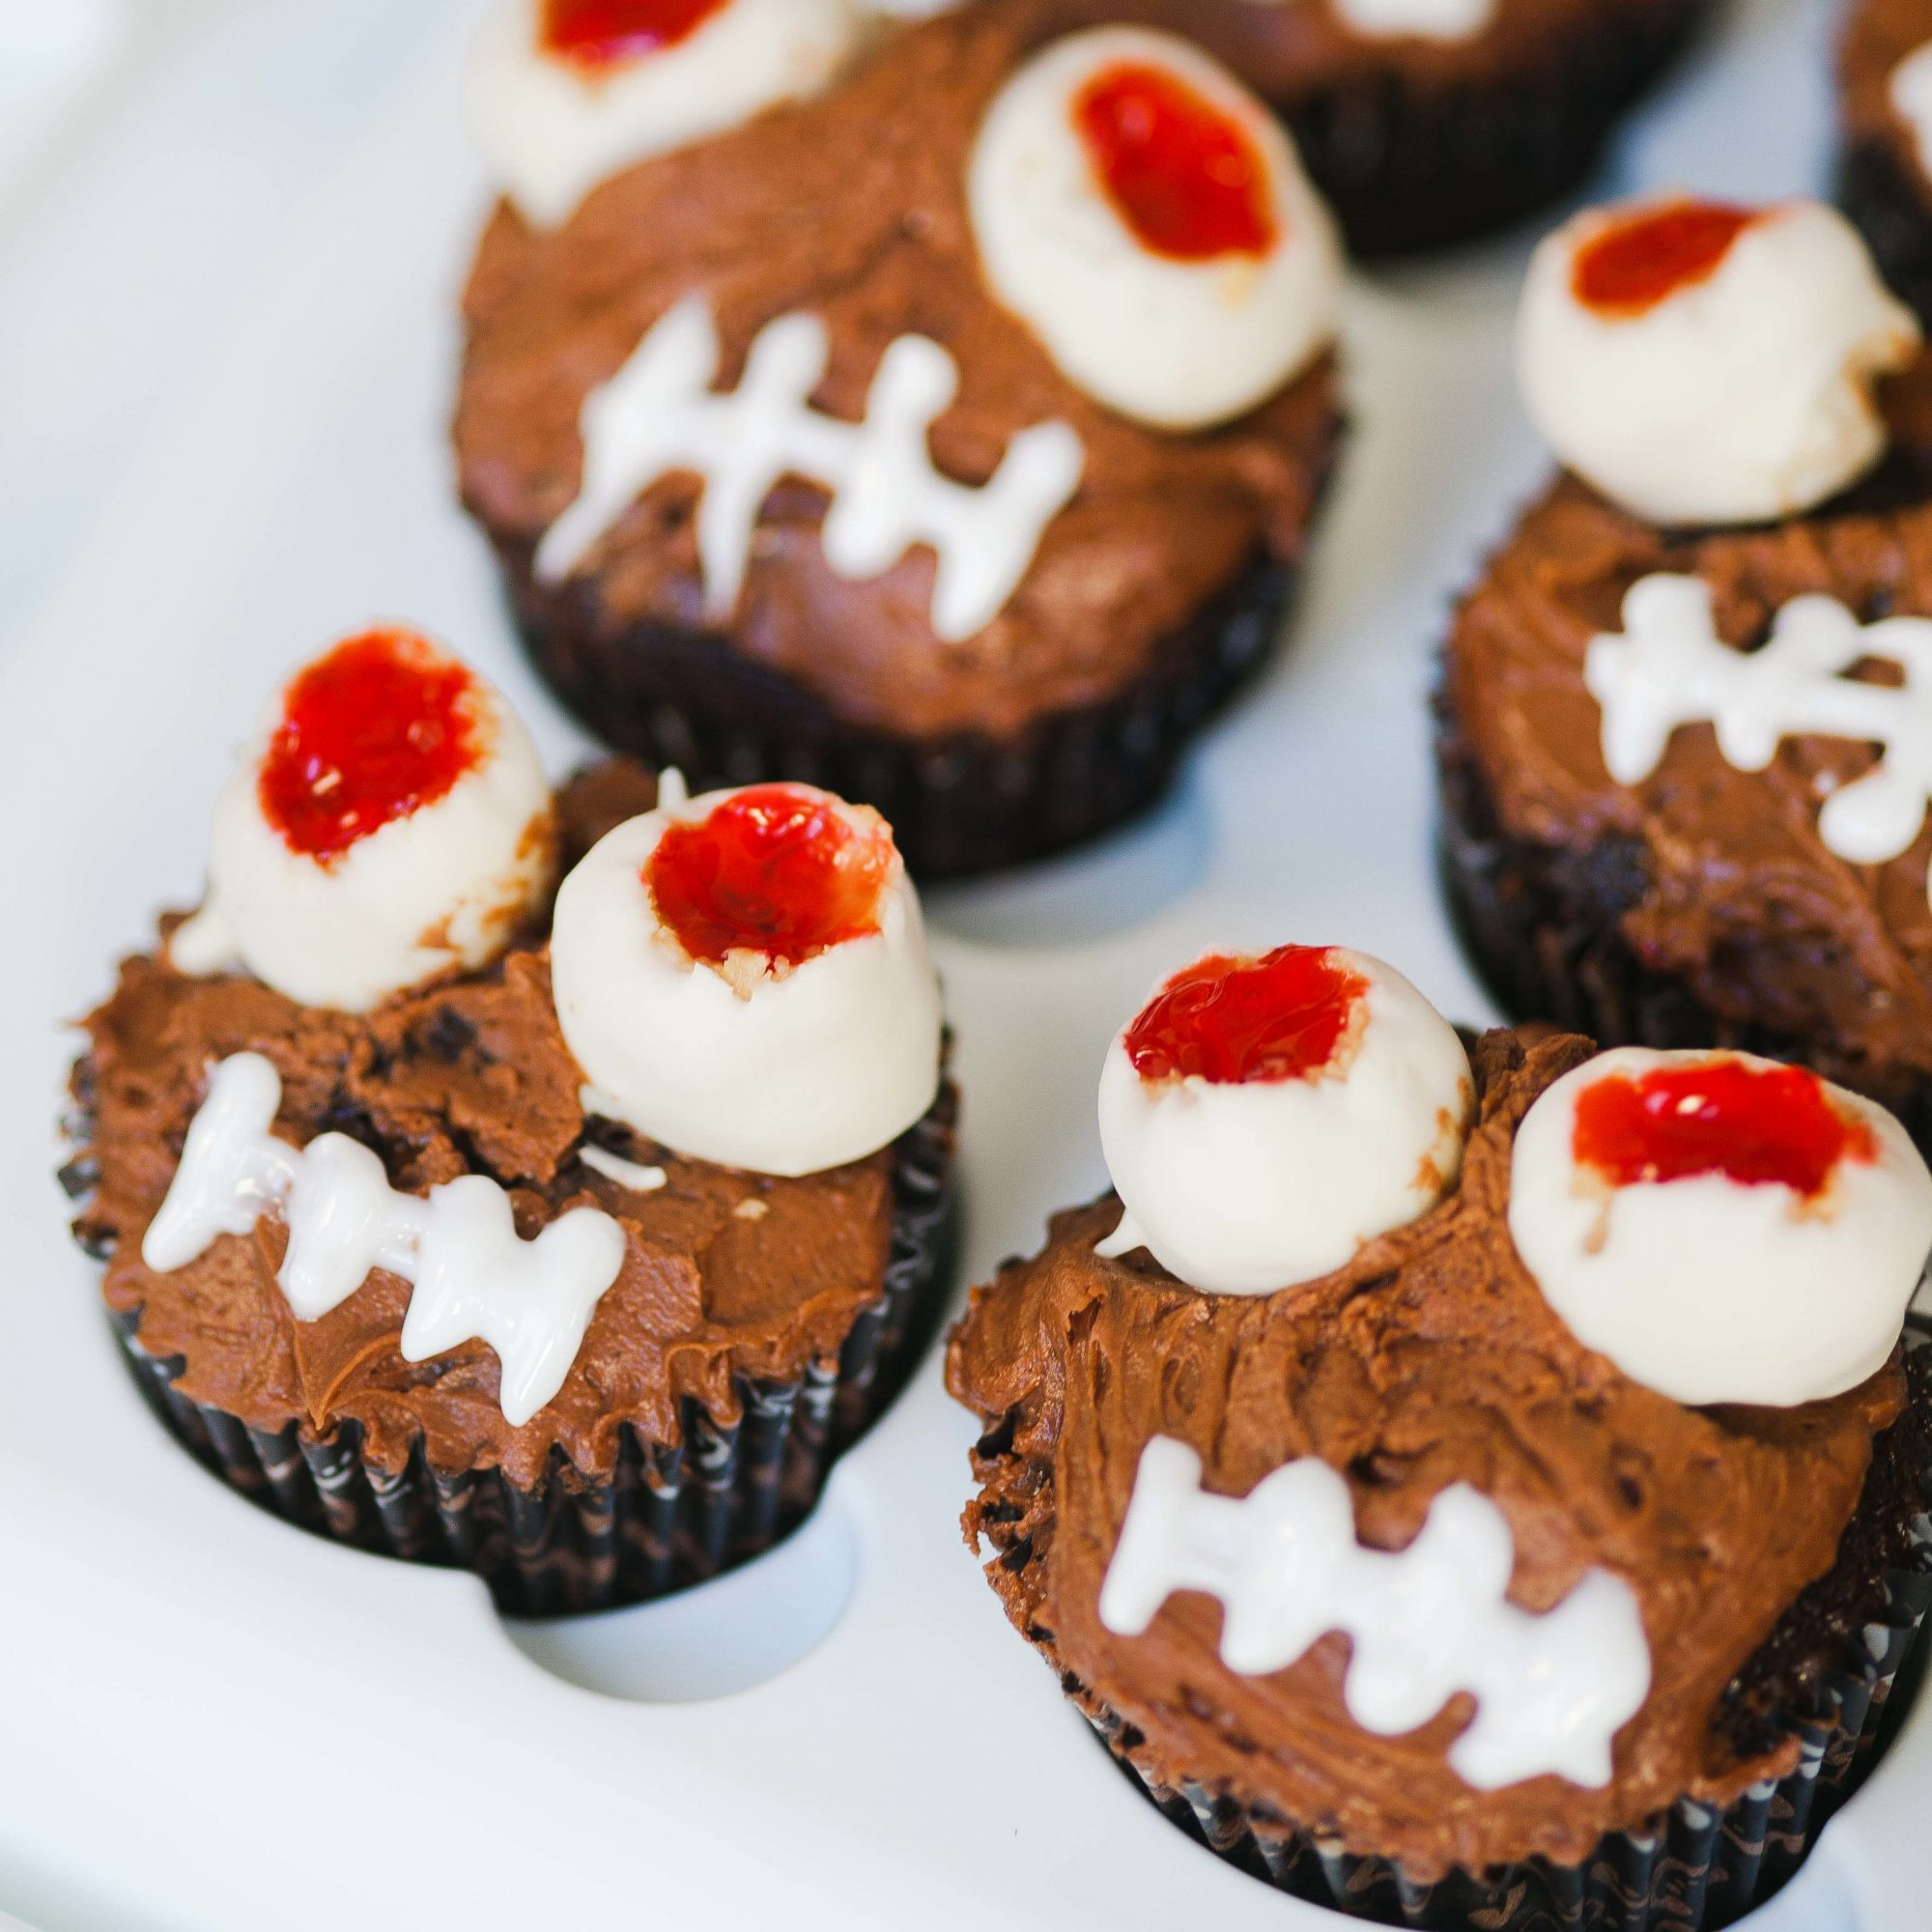 chocolate frosted cupcakes with monster eyes and mouth